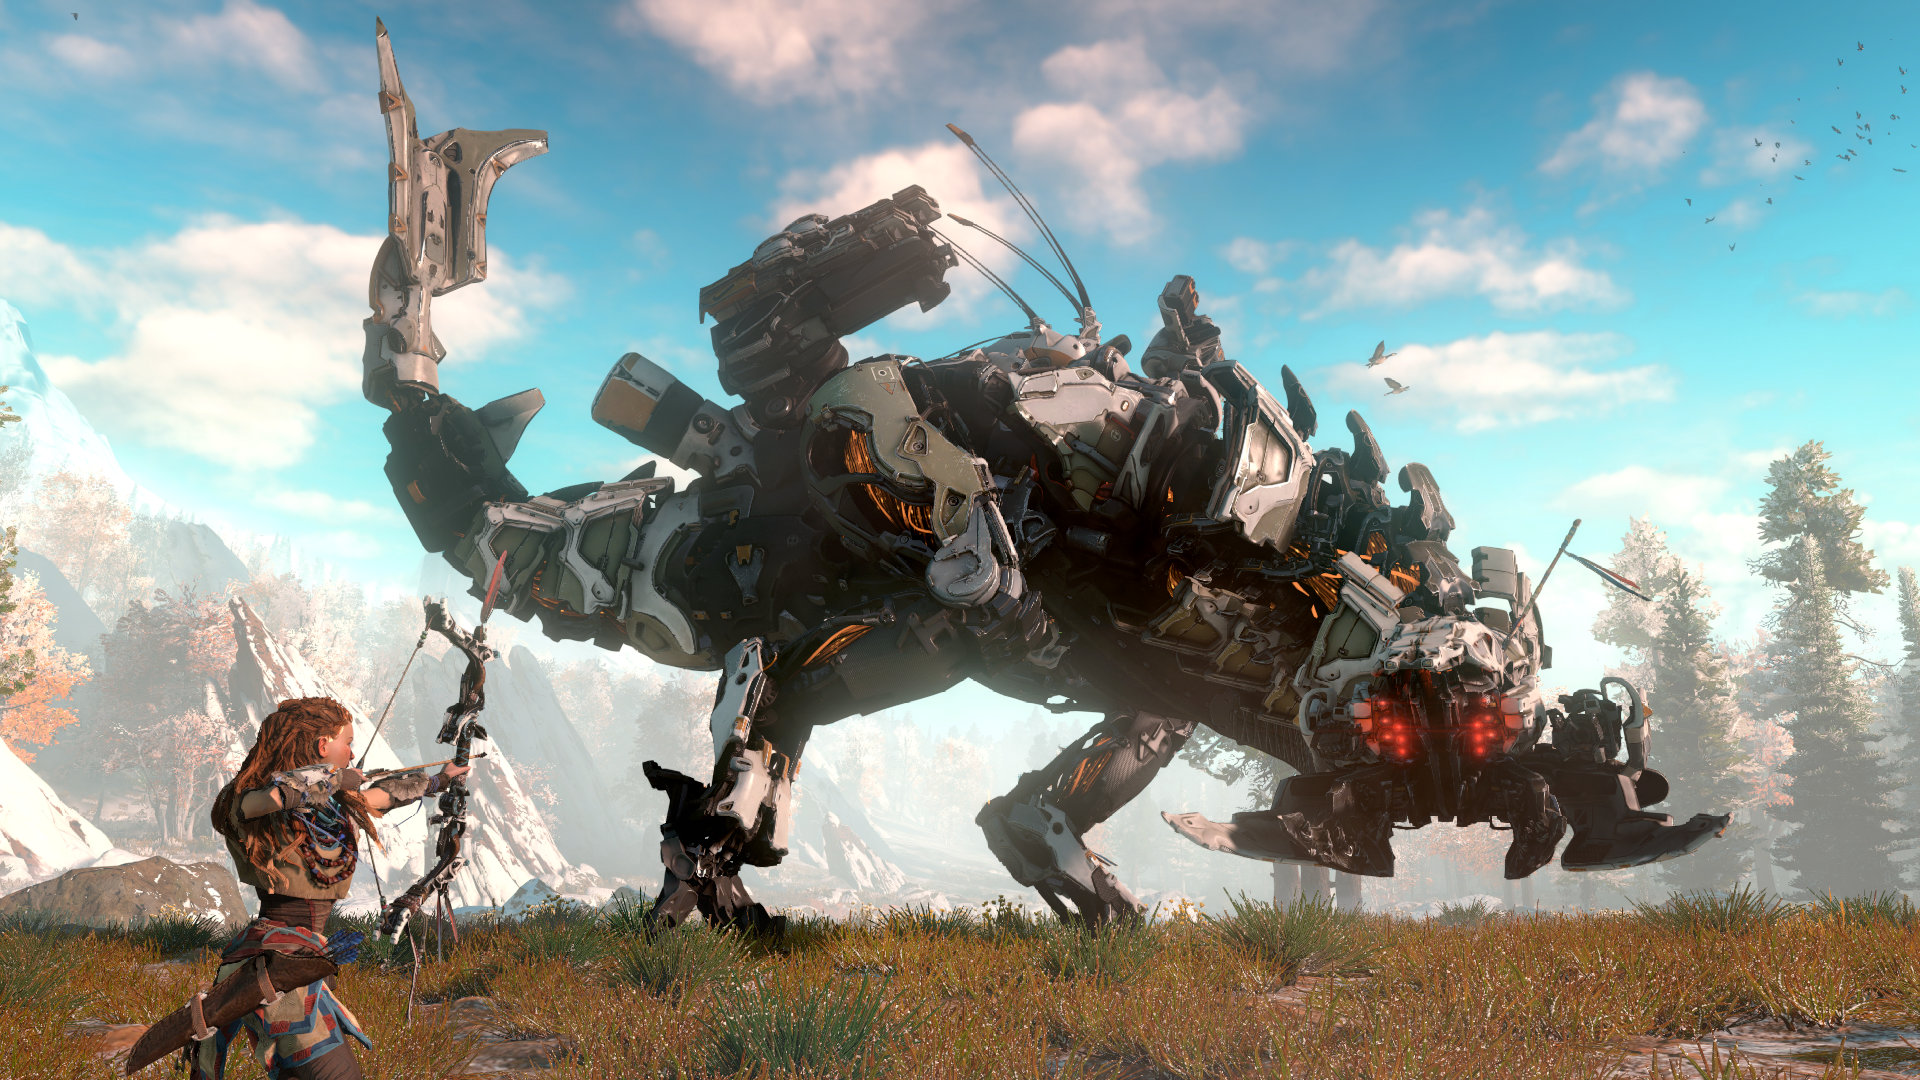 """Horizon Zero Dawn"" Delayed Into Early 2017 - Wanted Quality to Live Up What Was Shown"